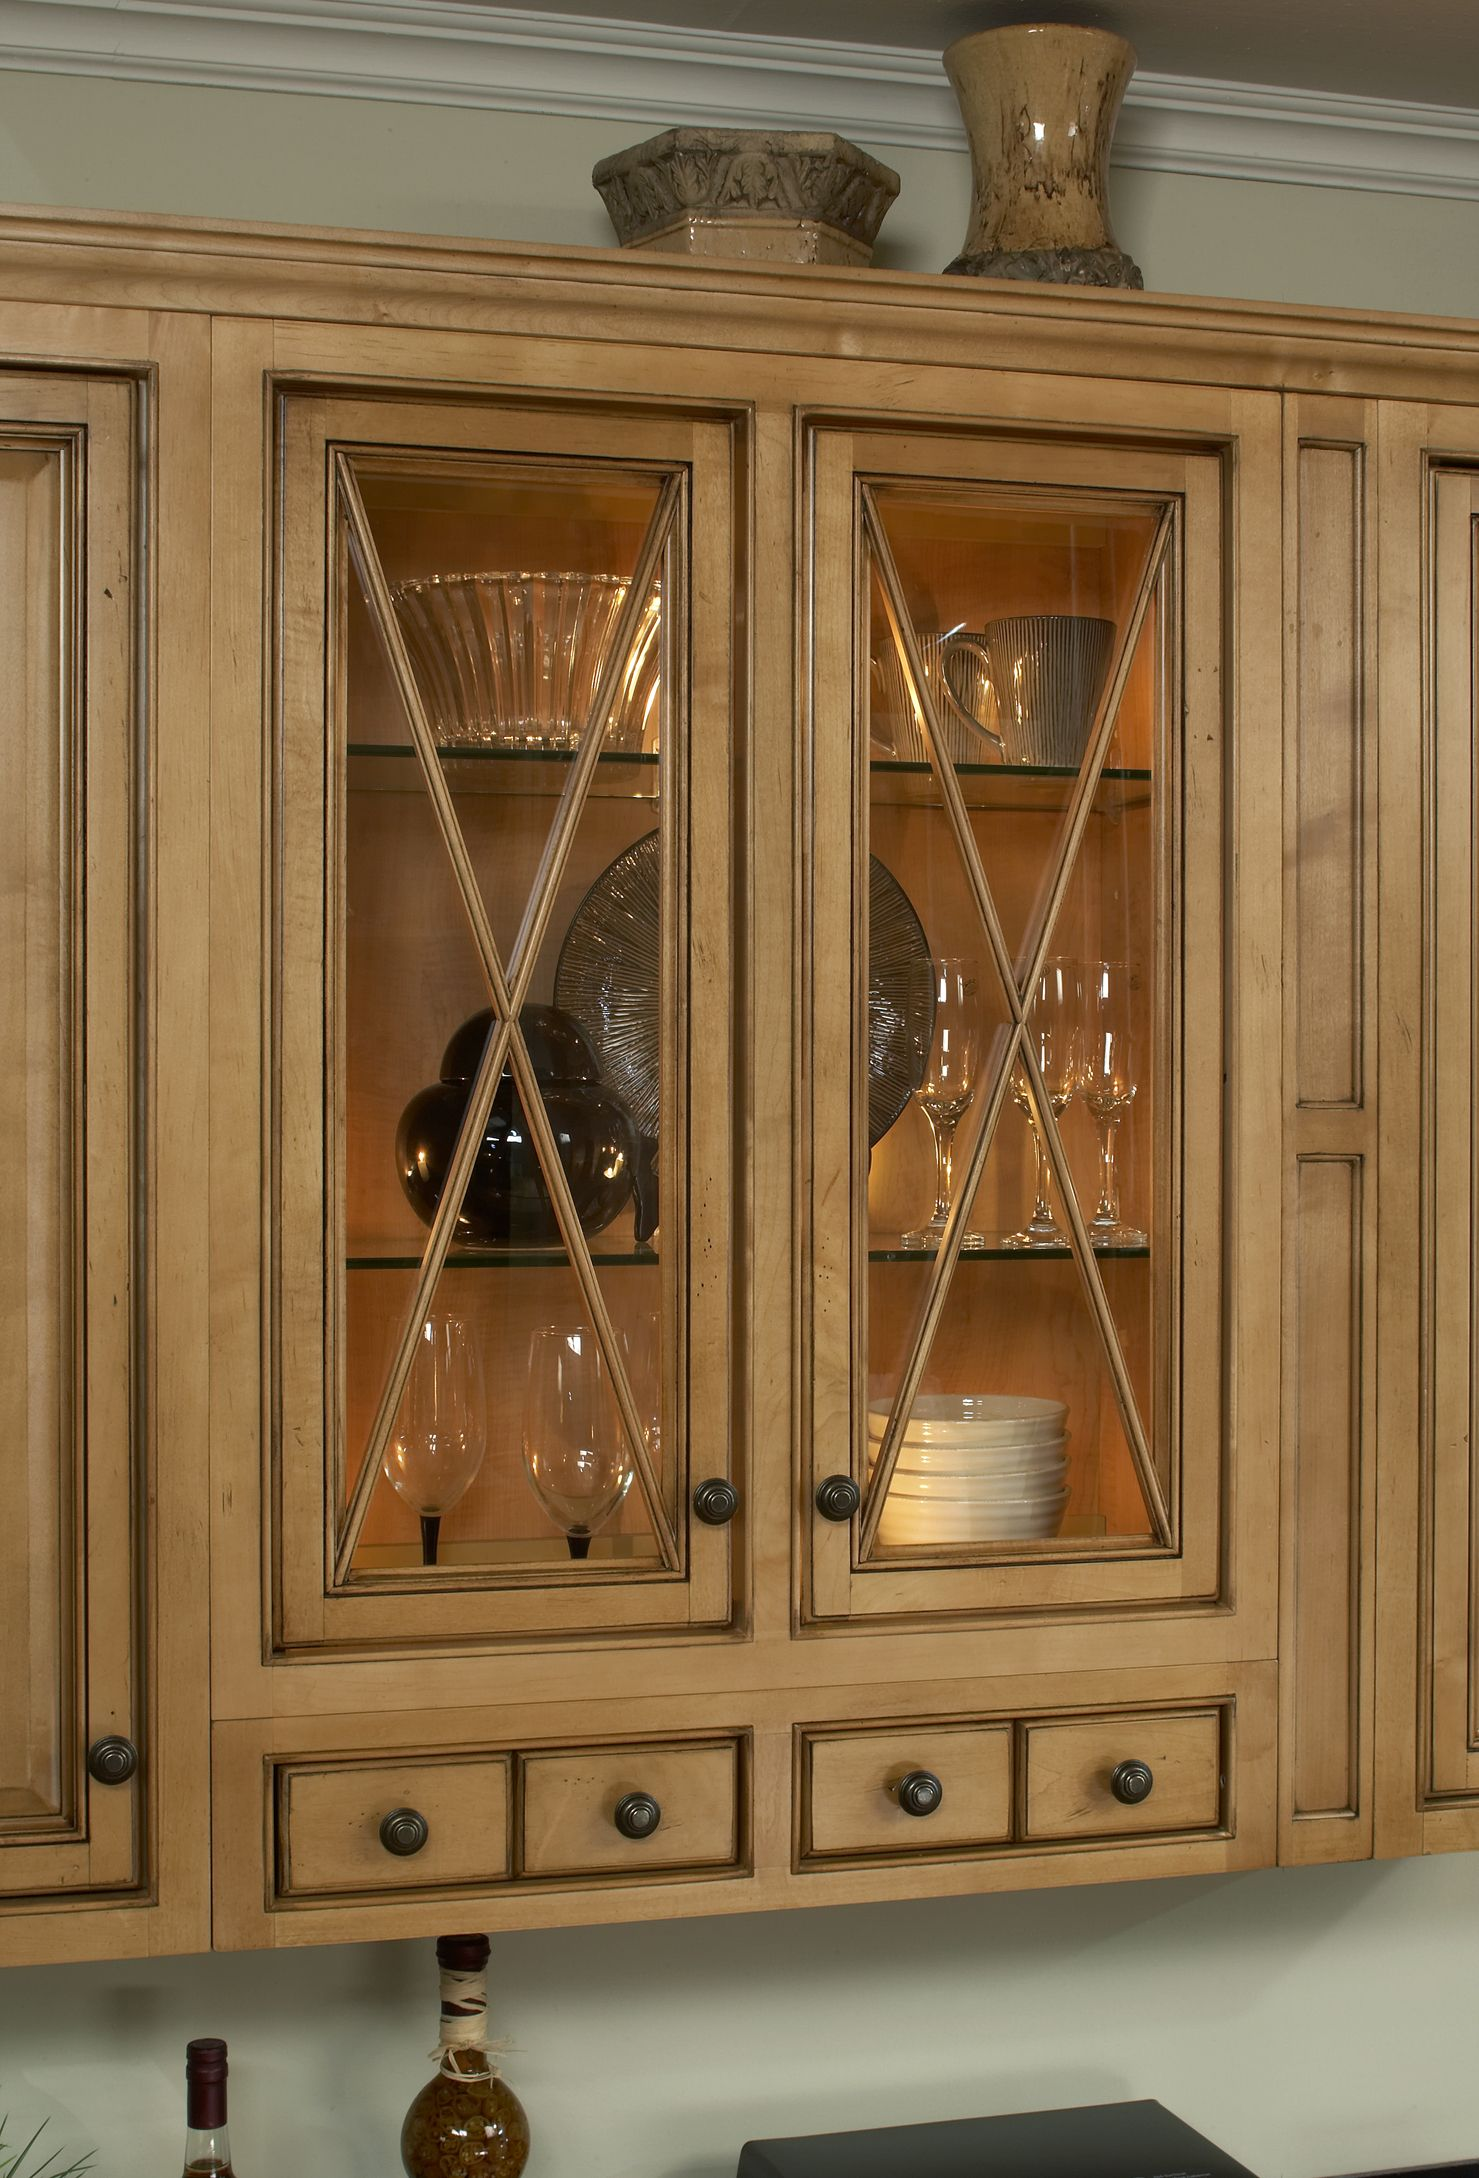 Sunny Wood Now Offers 30 36 And 42 Inch Tall Wall Cabinets As Standard In Stock Items Www Sunnywood Biz Wall Cabinet Cabinet Cabinet Design